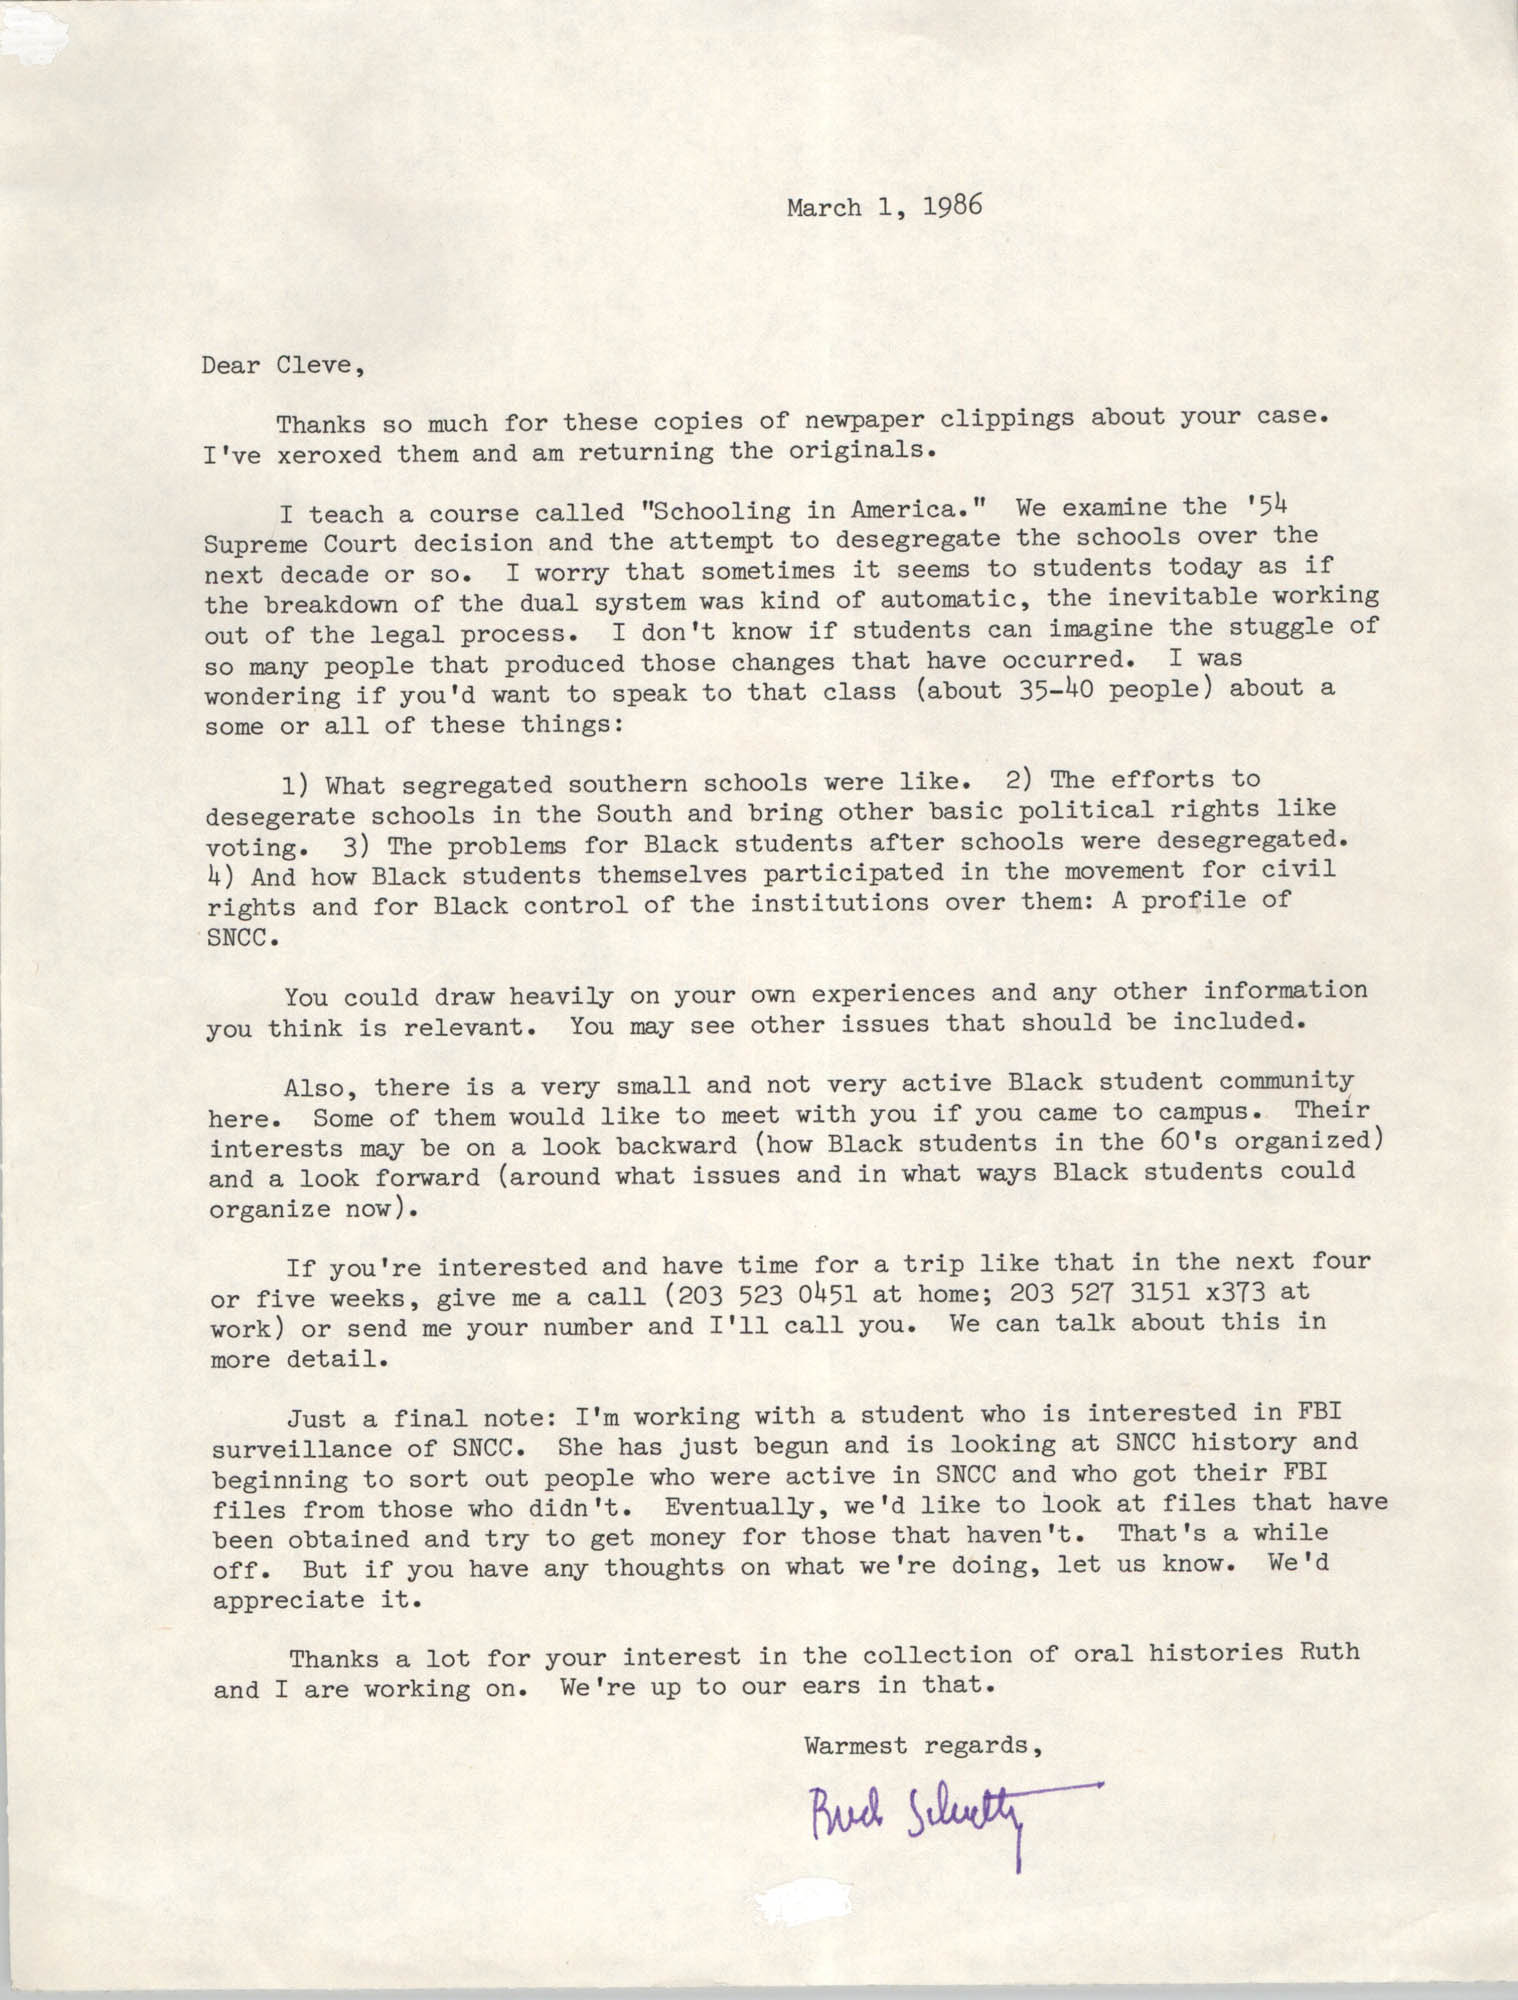 Letter from Bud Schultz to Cleveland Sellers, March 1, 1986